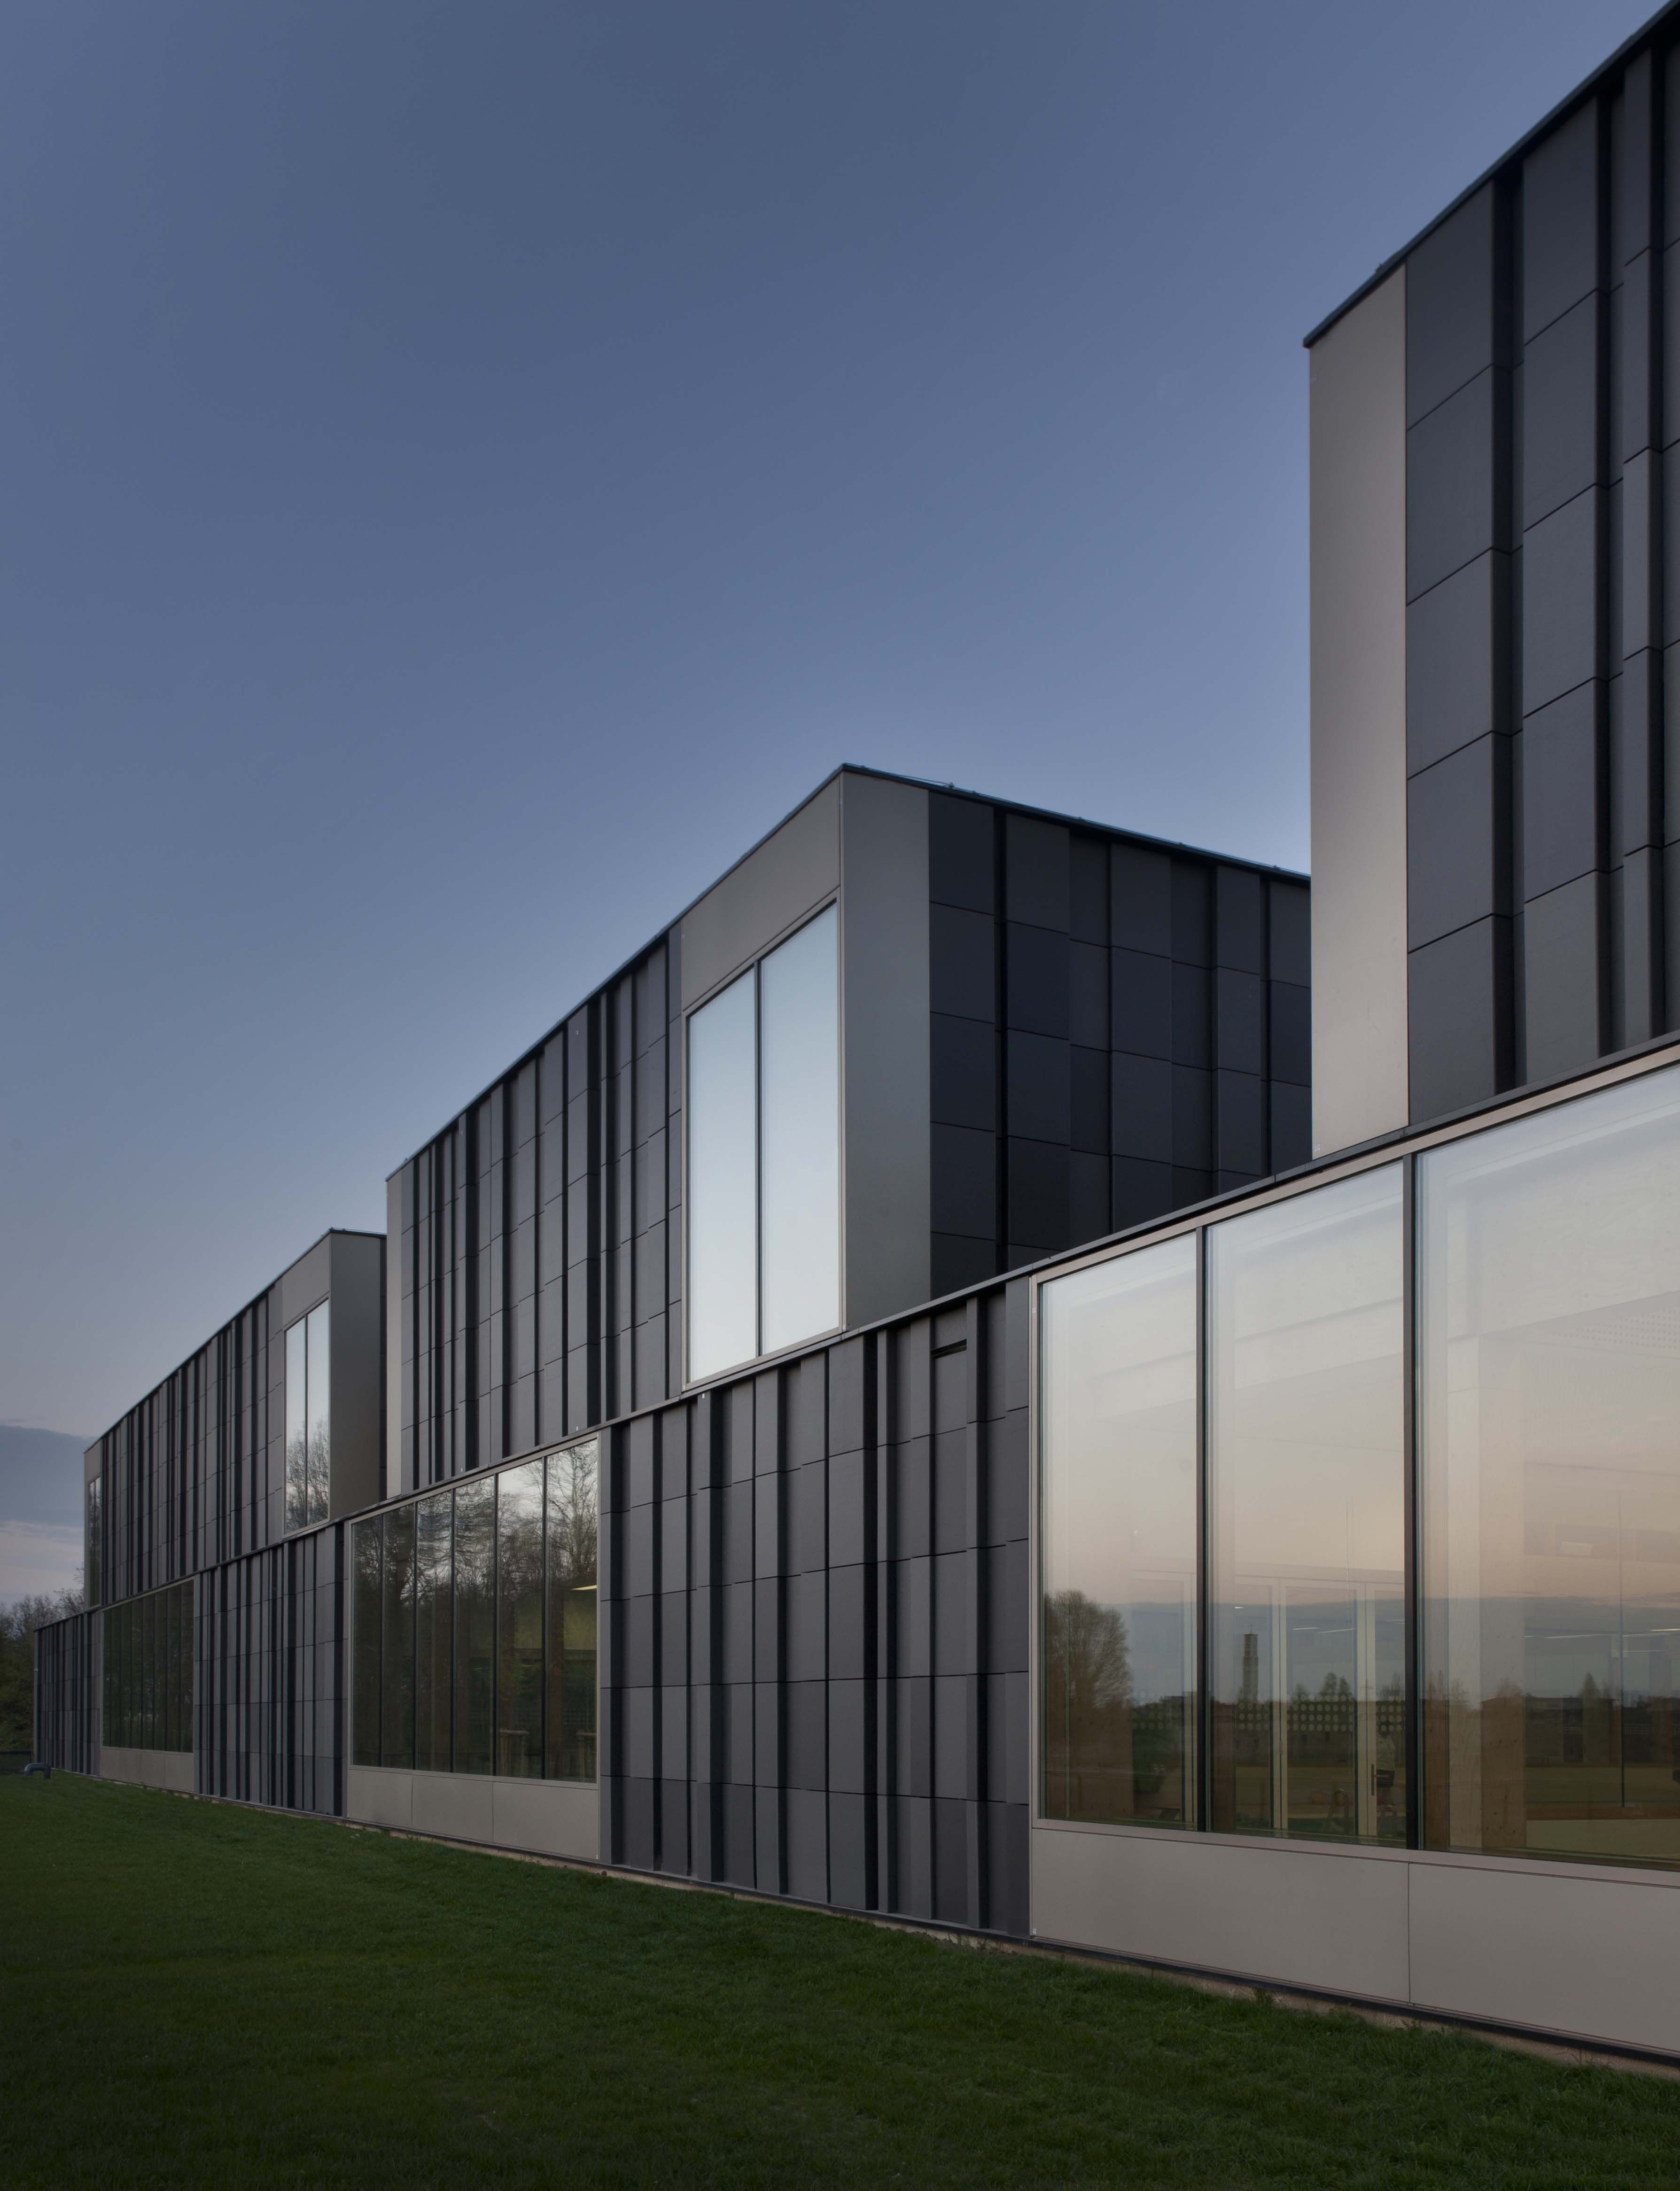 Mosafacades at the geusseltbad in the netherlands for Hedendaagse architecten